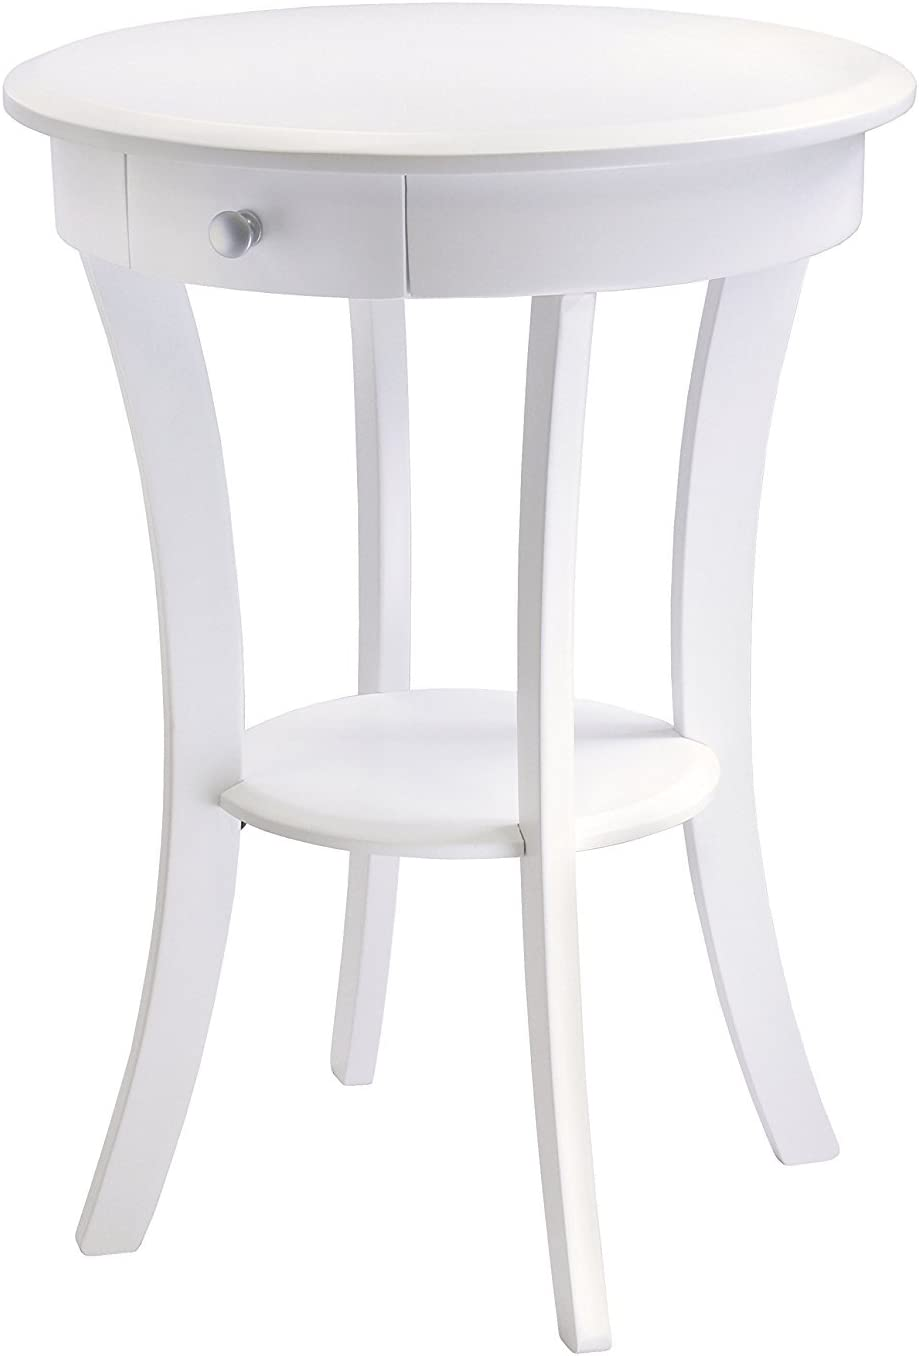 - Amazon.com: Accent Table For Small Places White Premium Wood Night